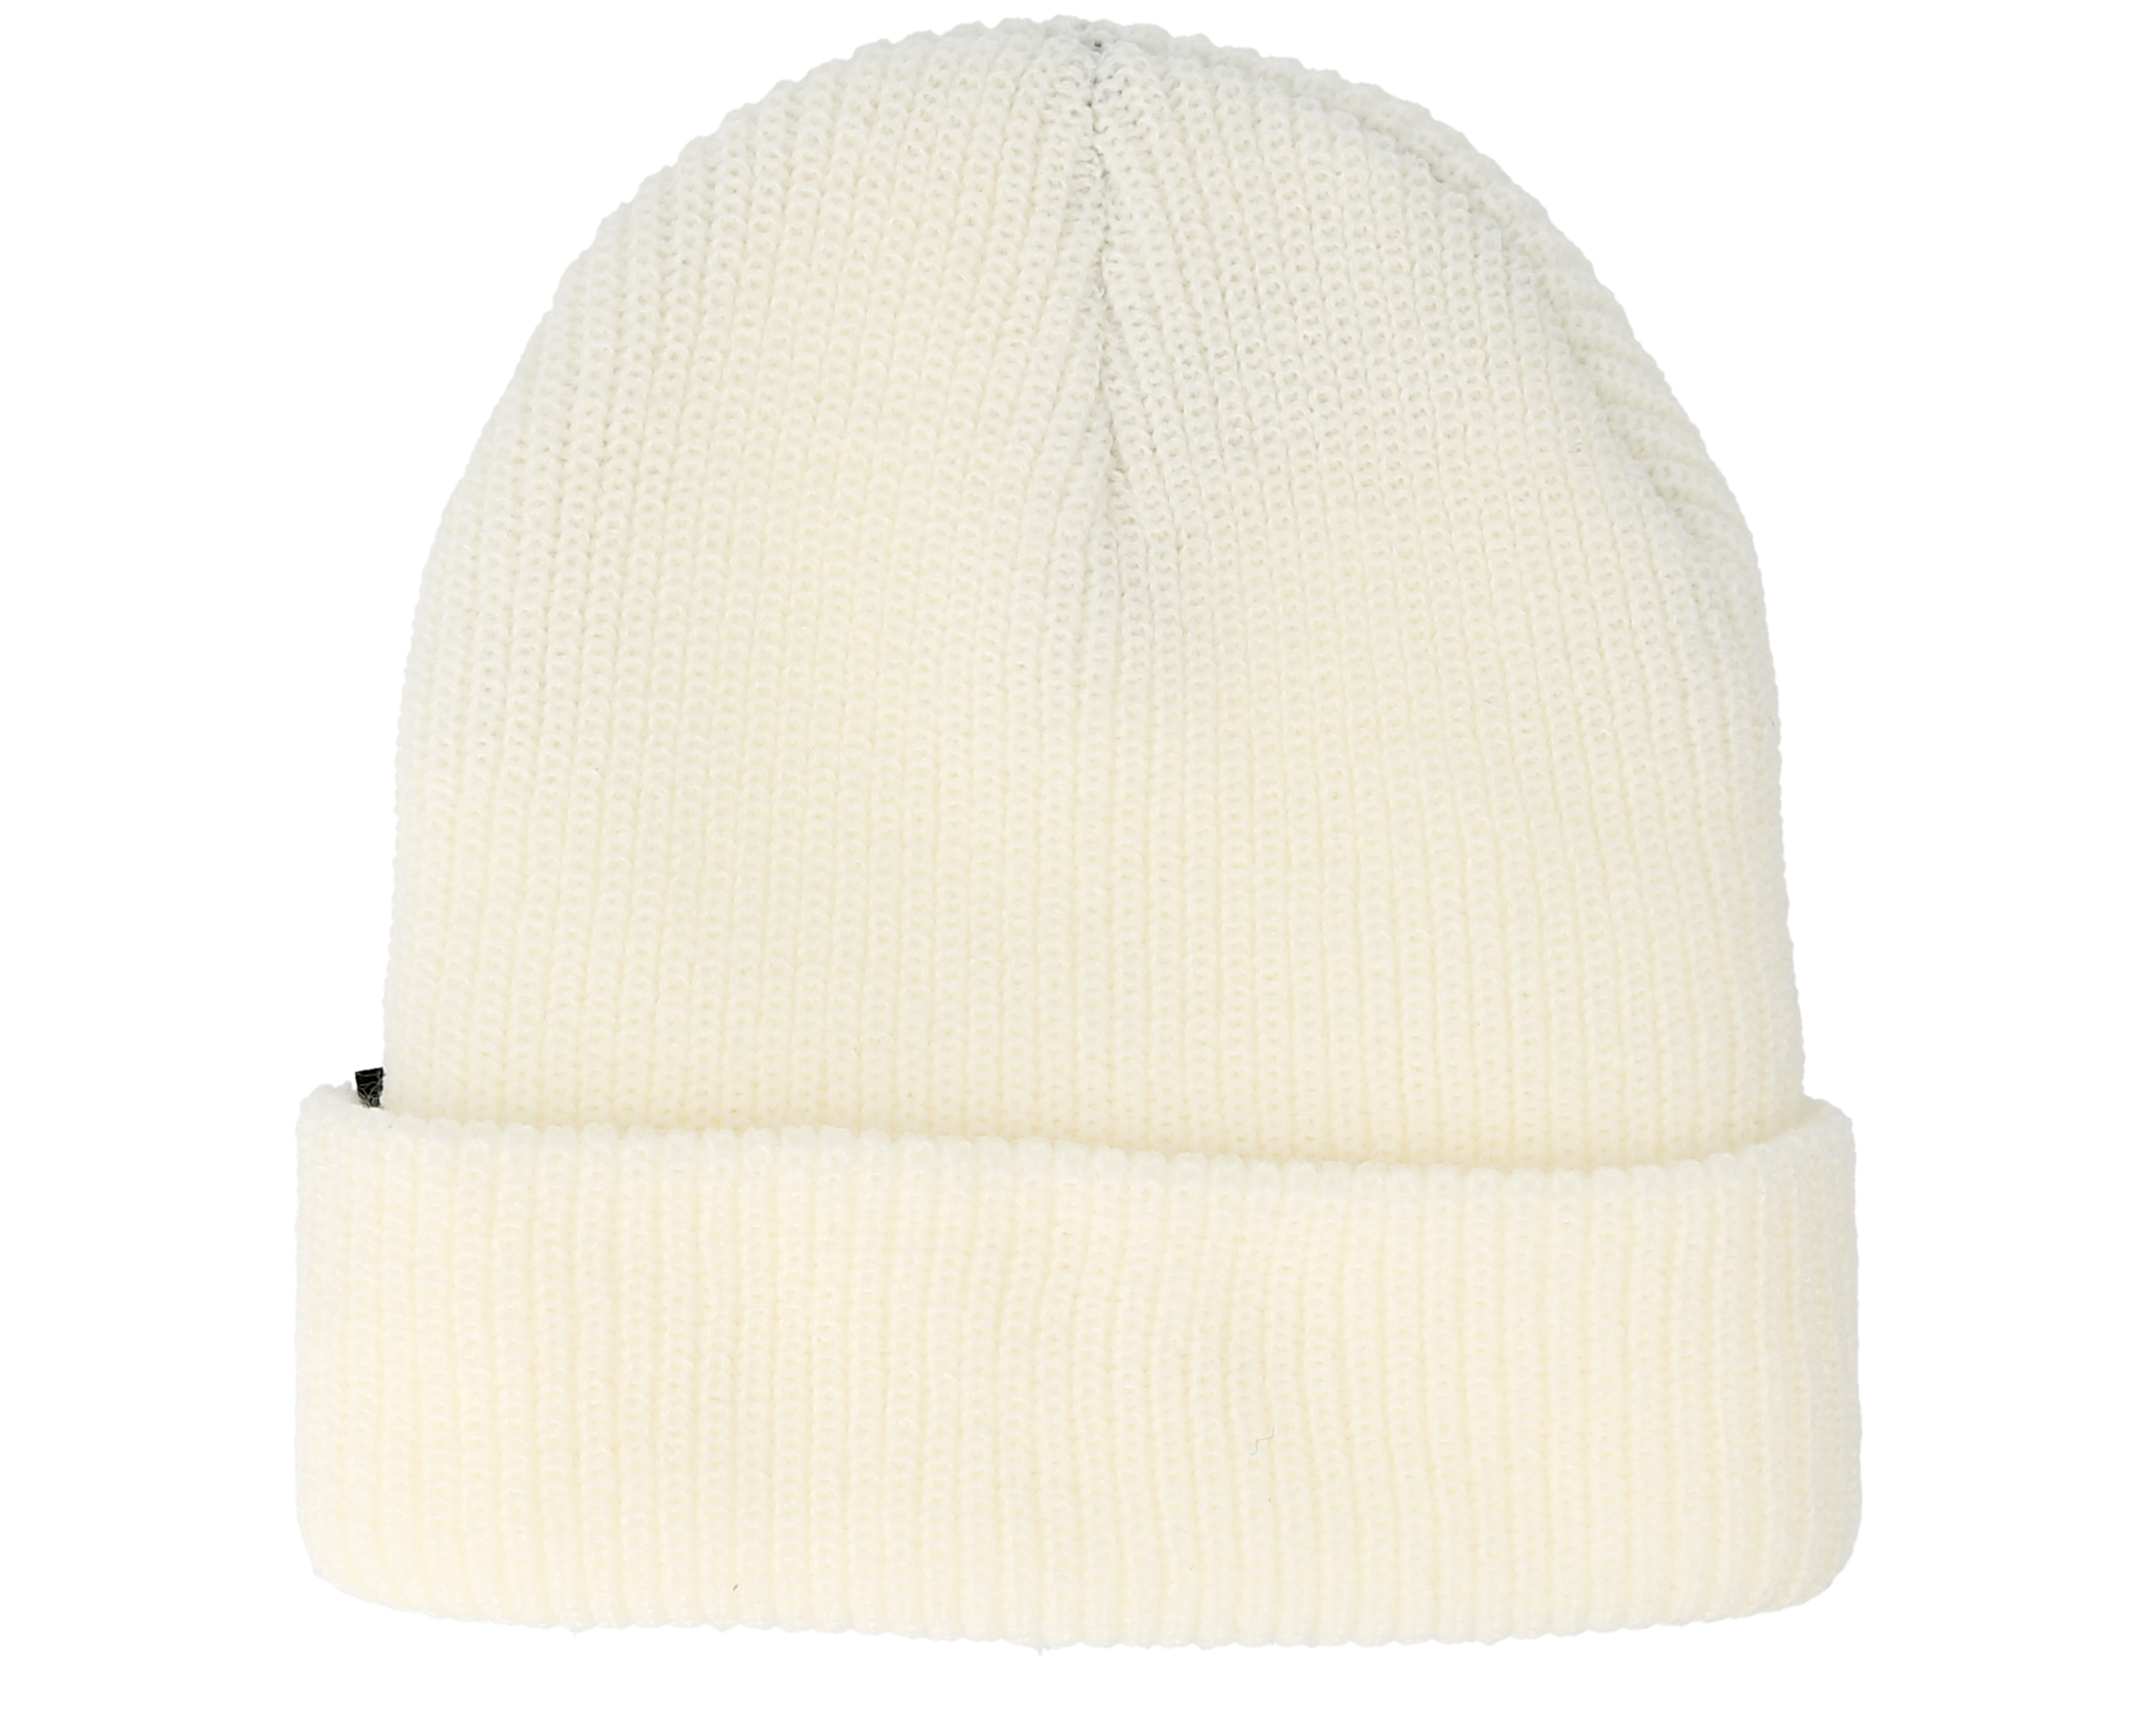 Find great deals on eBay for white beanie hat. Shop with confidence.